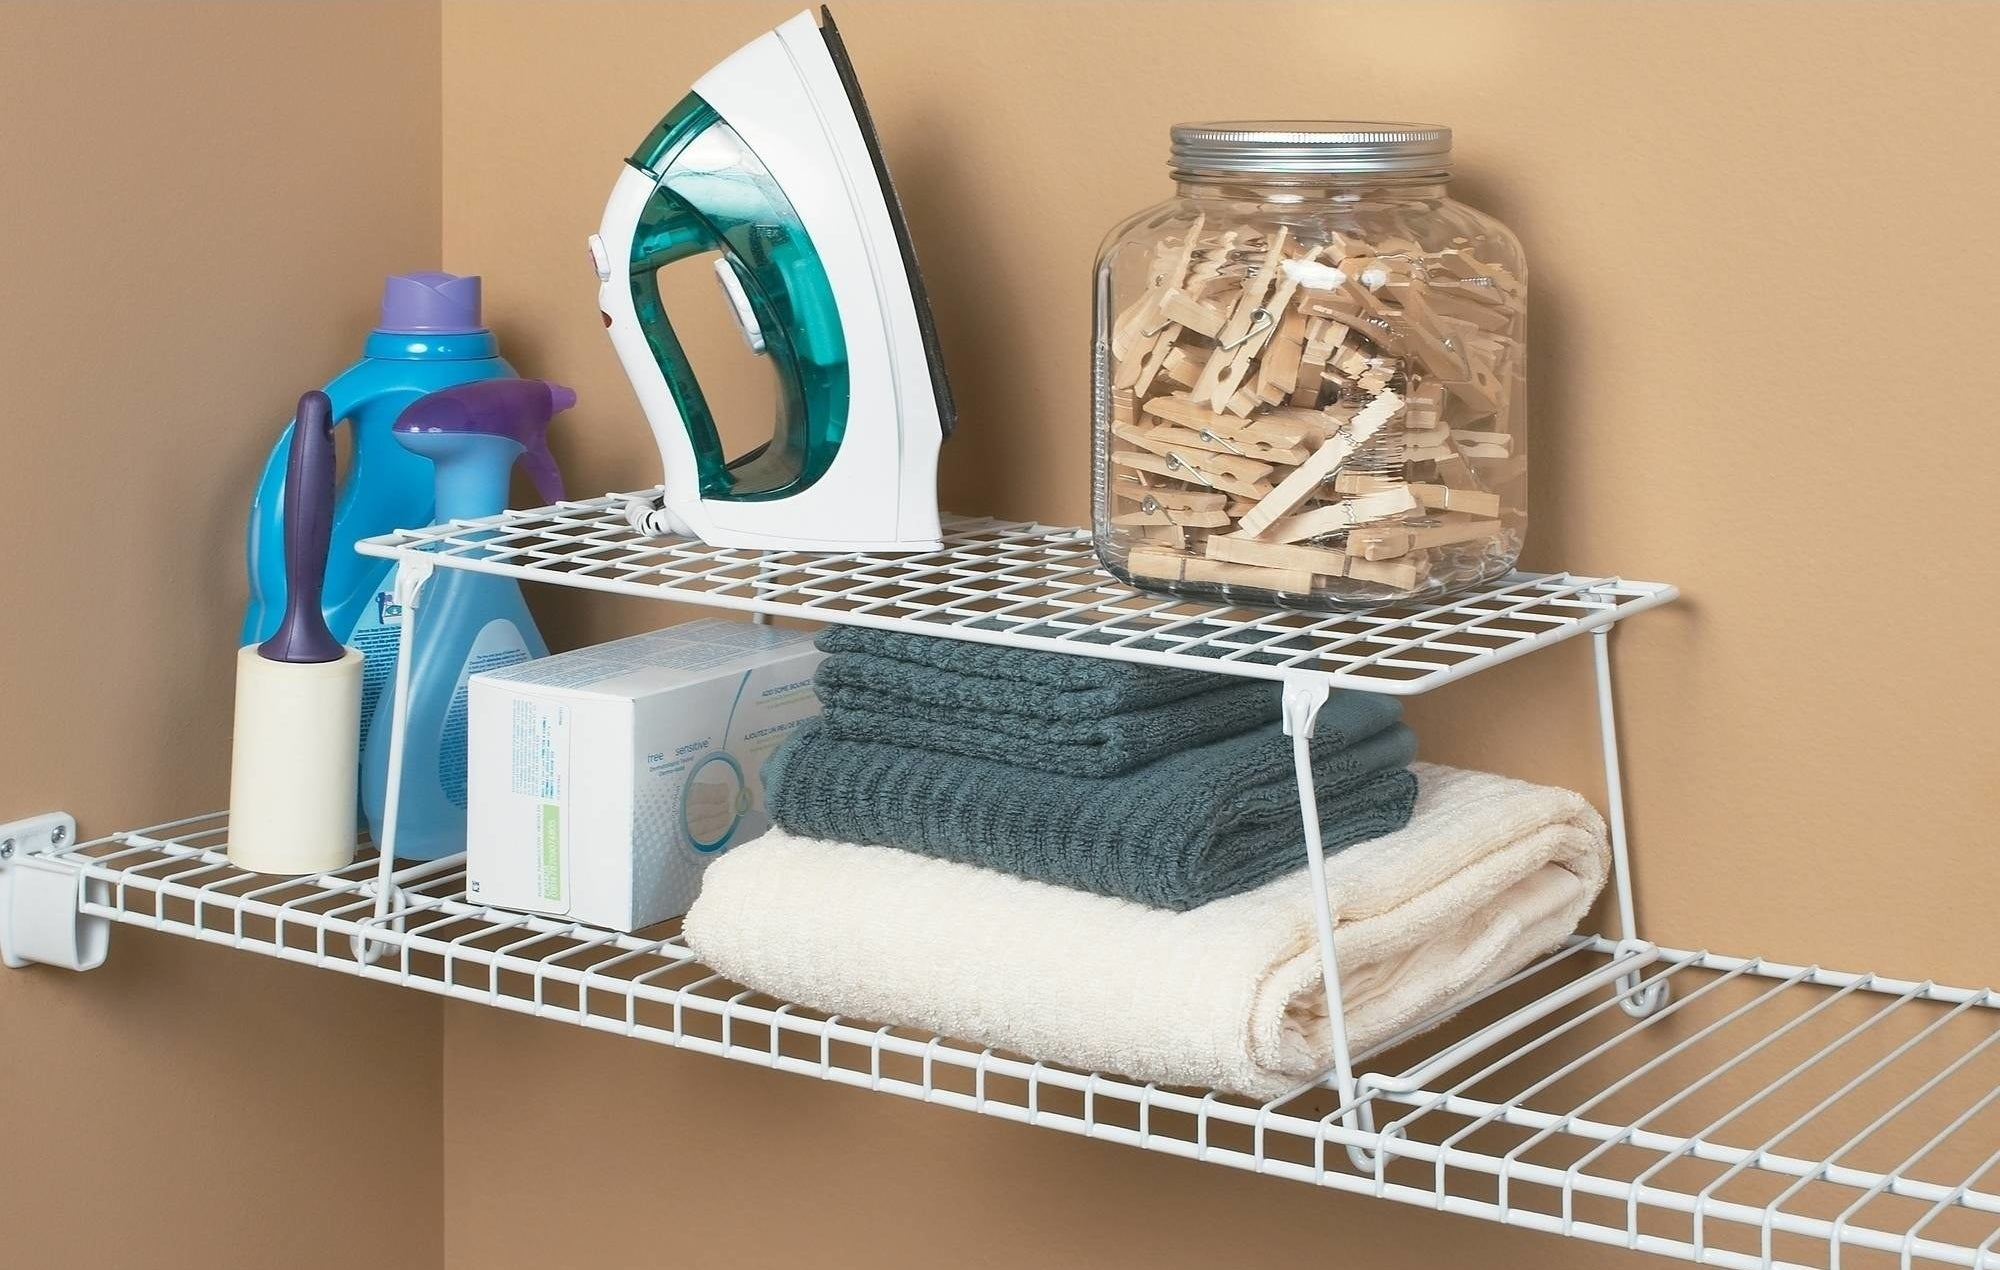 white wire storage shelf holding an iron and jar of clothes pins with towels underneath